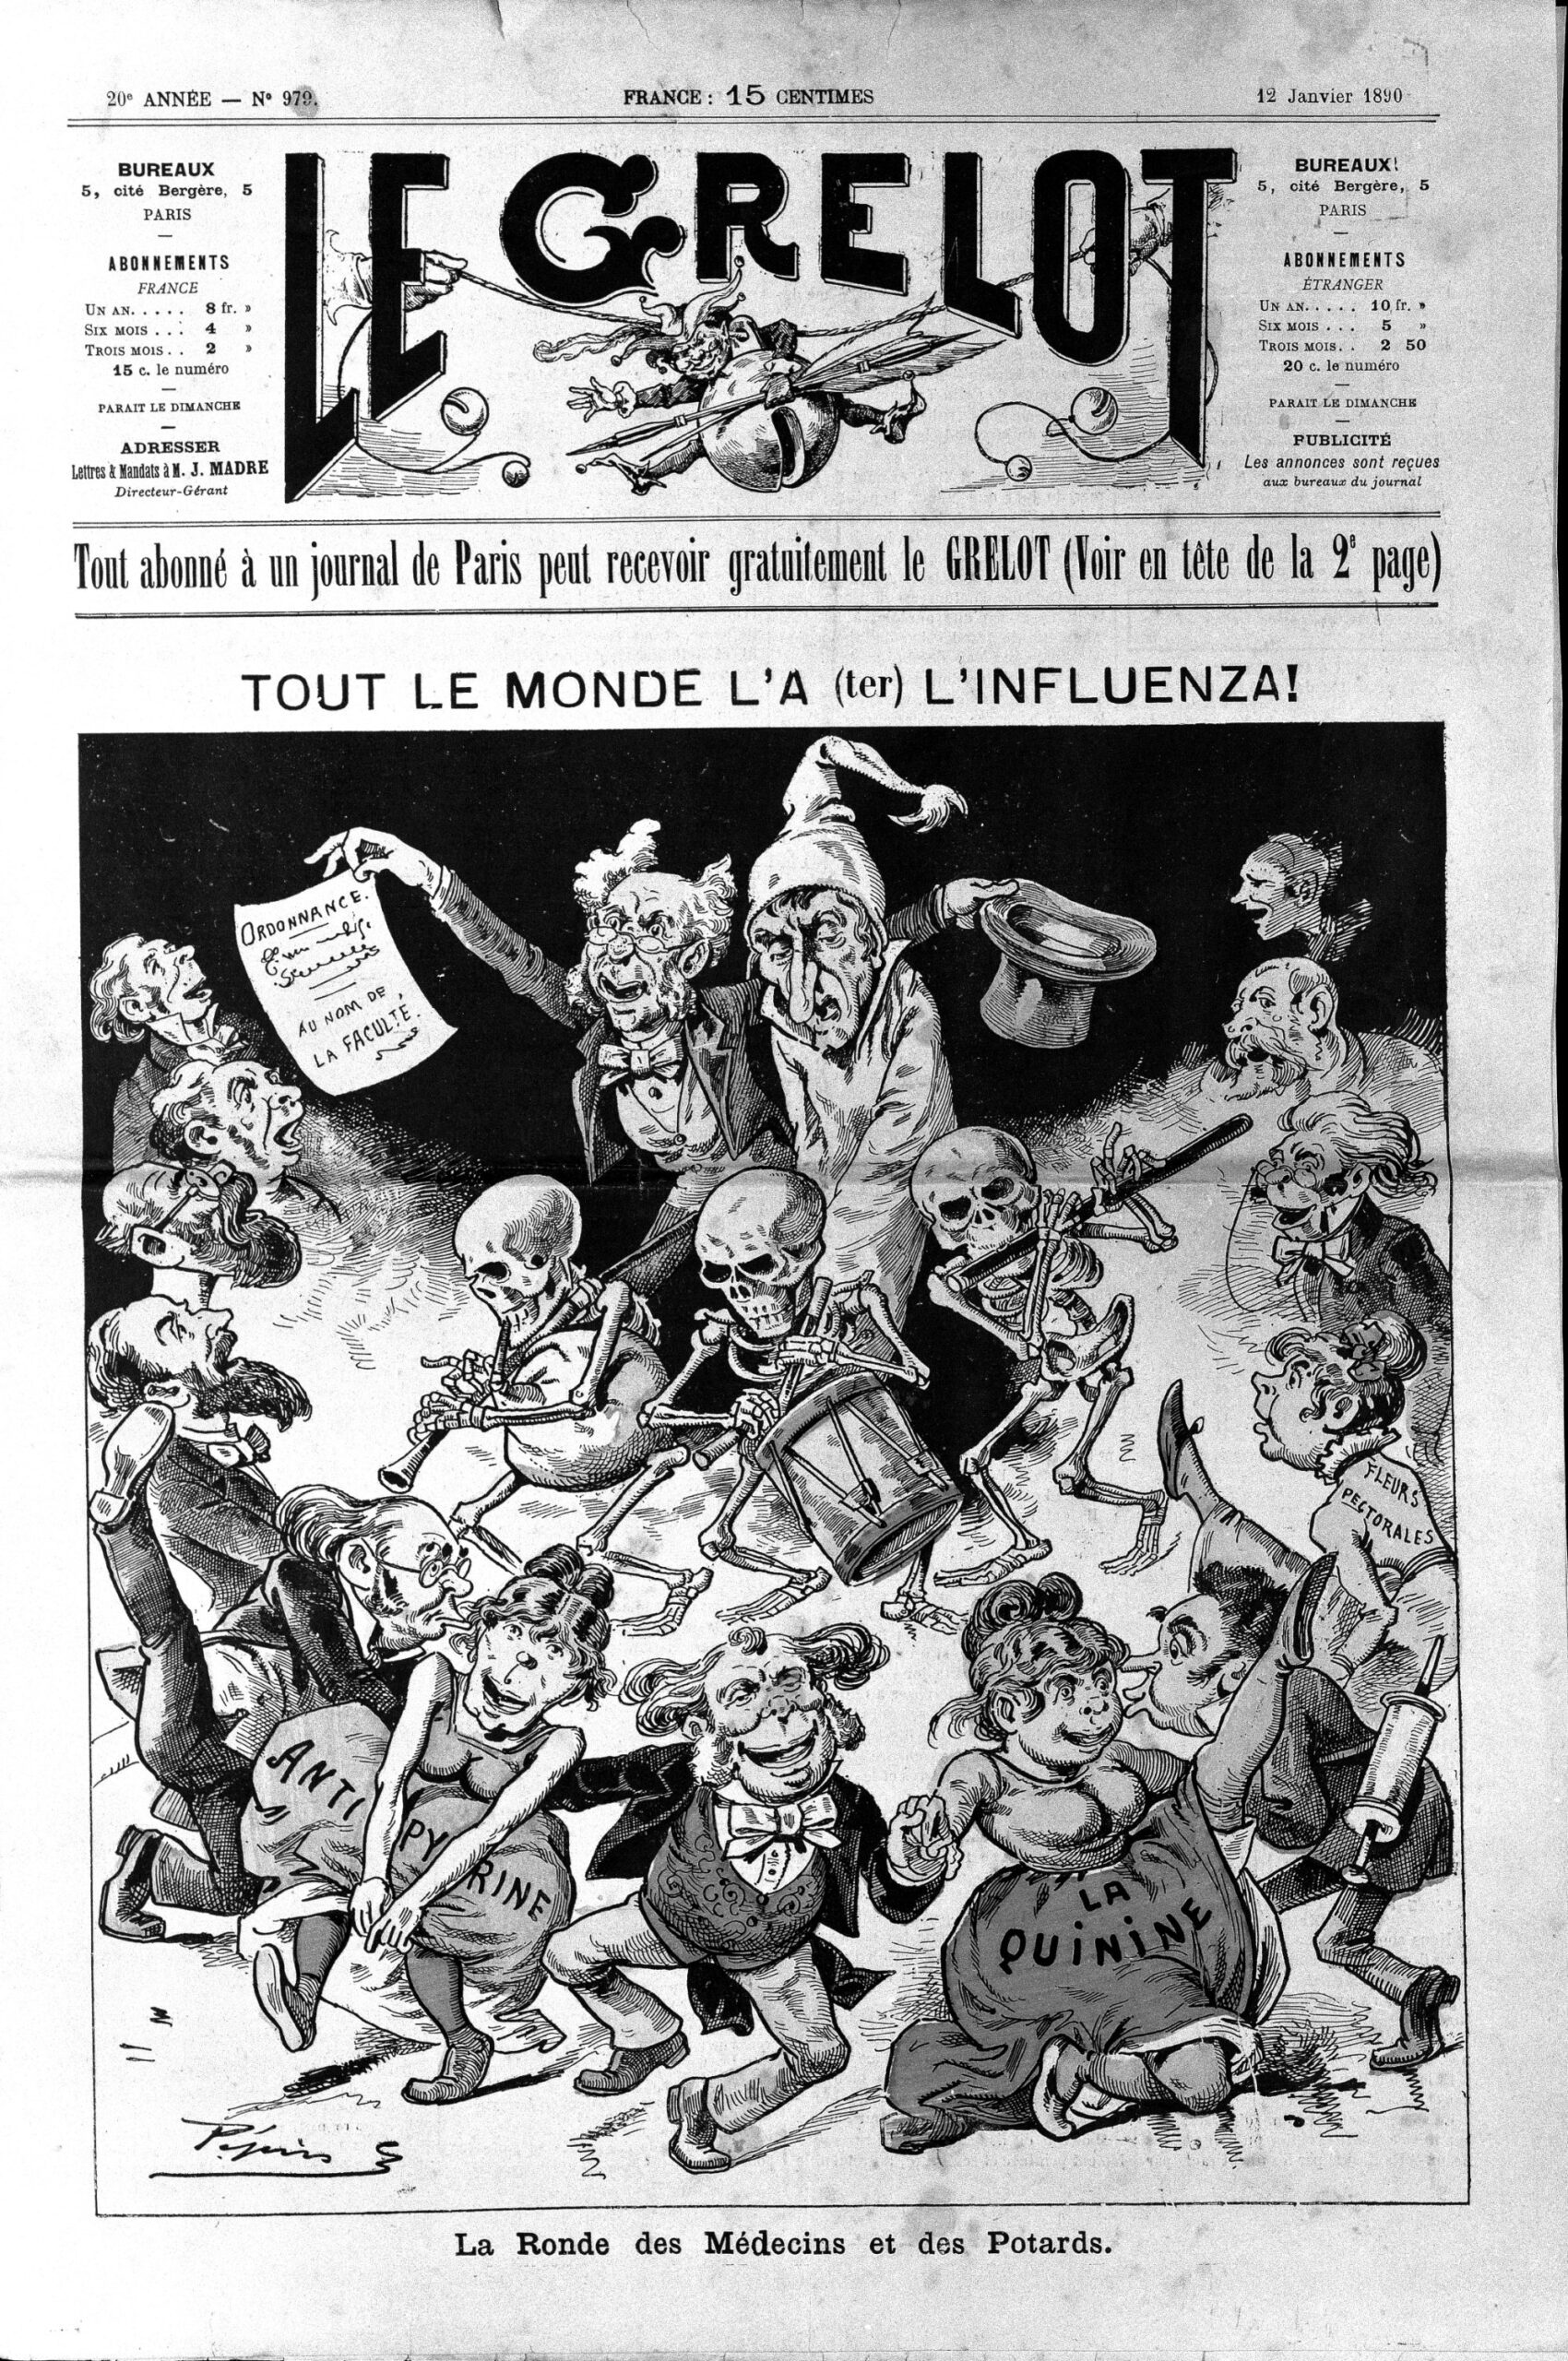 """Alle Welt hat Influenza"" (Karikatur von 1893) • CC BY 4.0 • http://commons.wikimedia.org/wiki/File:A_man_with_influenza,_taken_in_hand_by_a_doctor,_surrounded_Wellcome_L0026163.jpg#mw-jump-to-license"